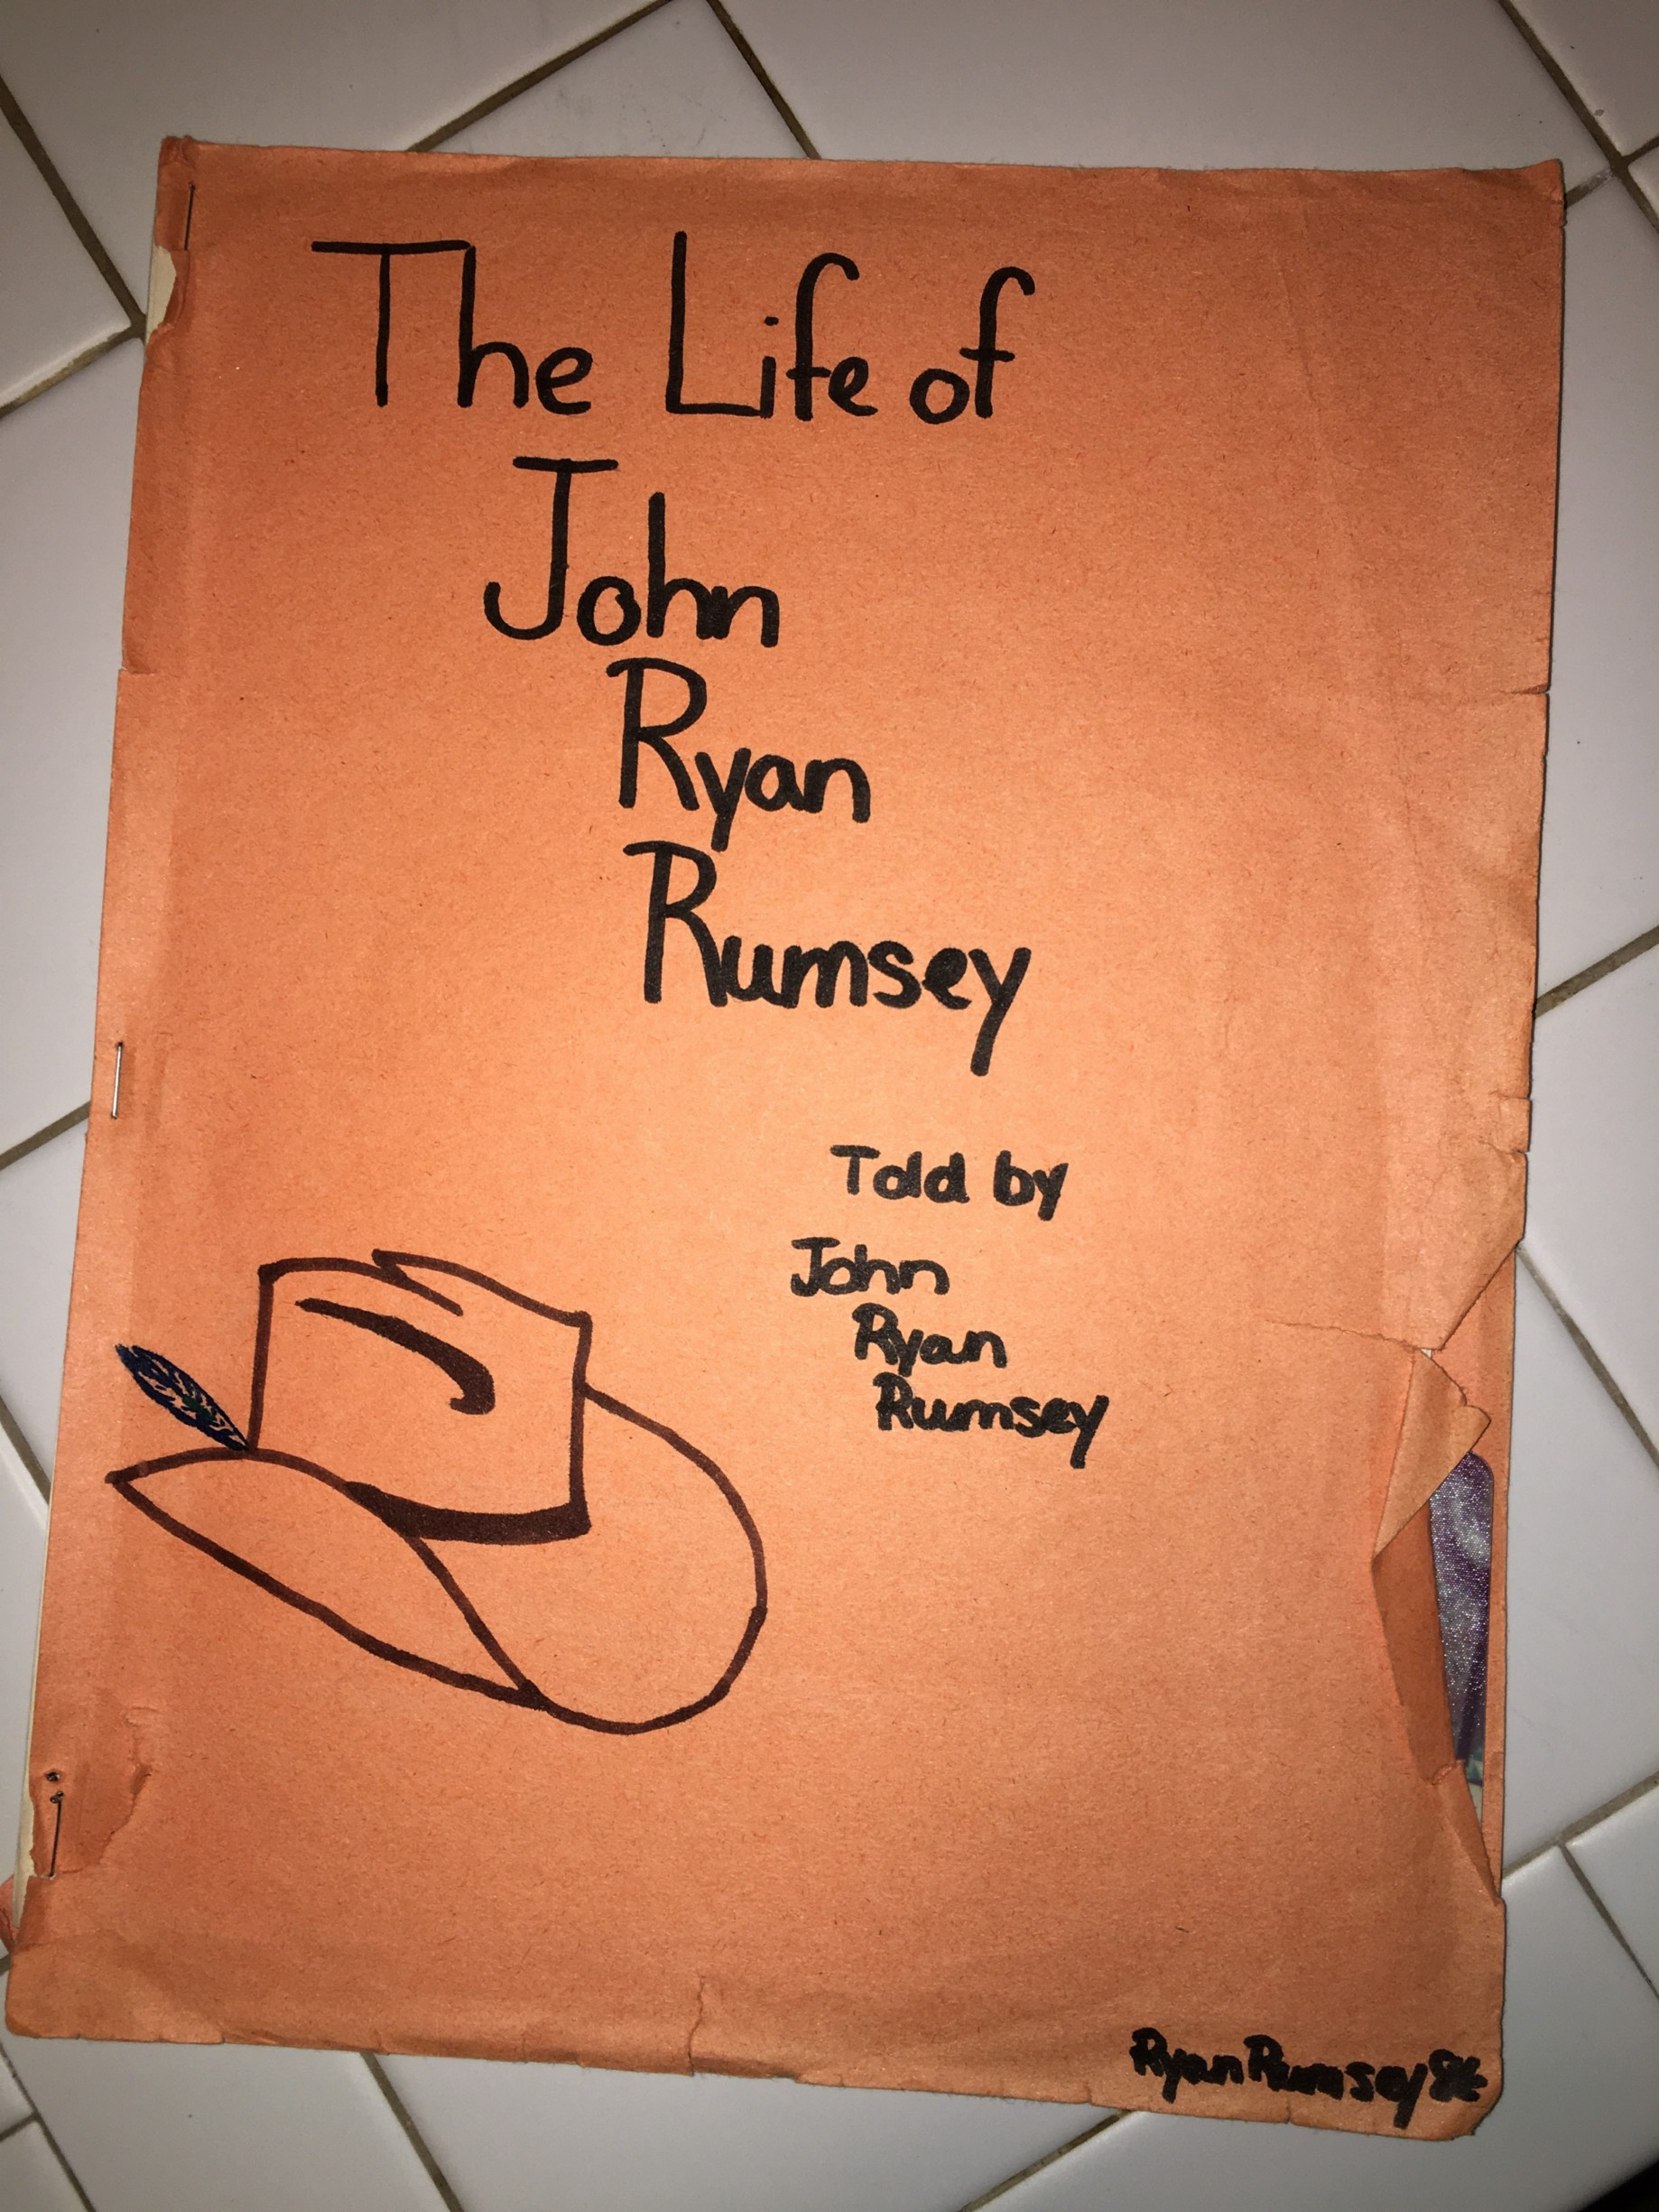 I wrote an autobiography in 1988 at age 14